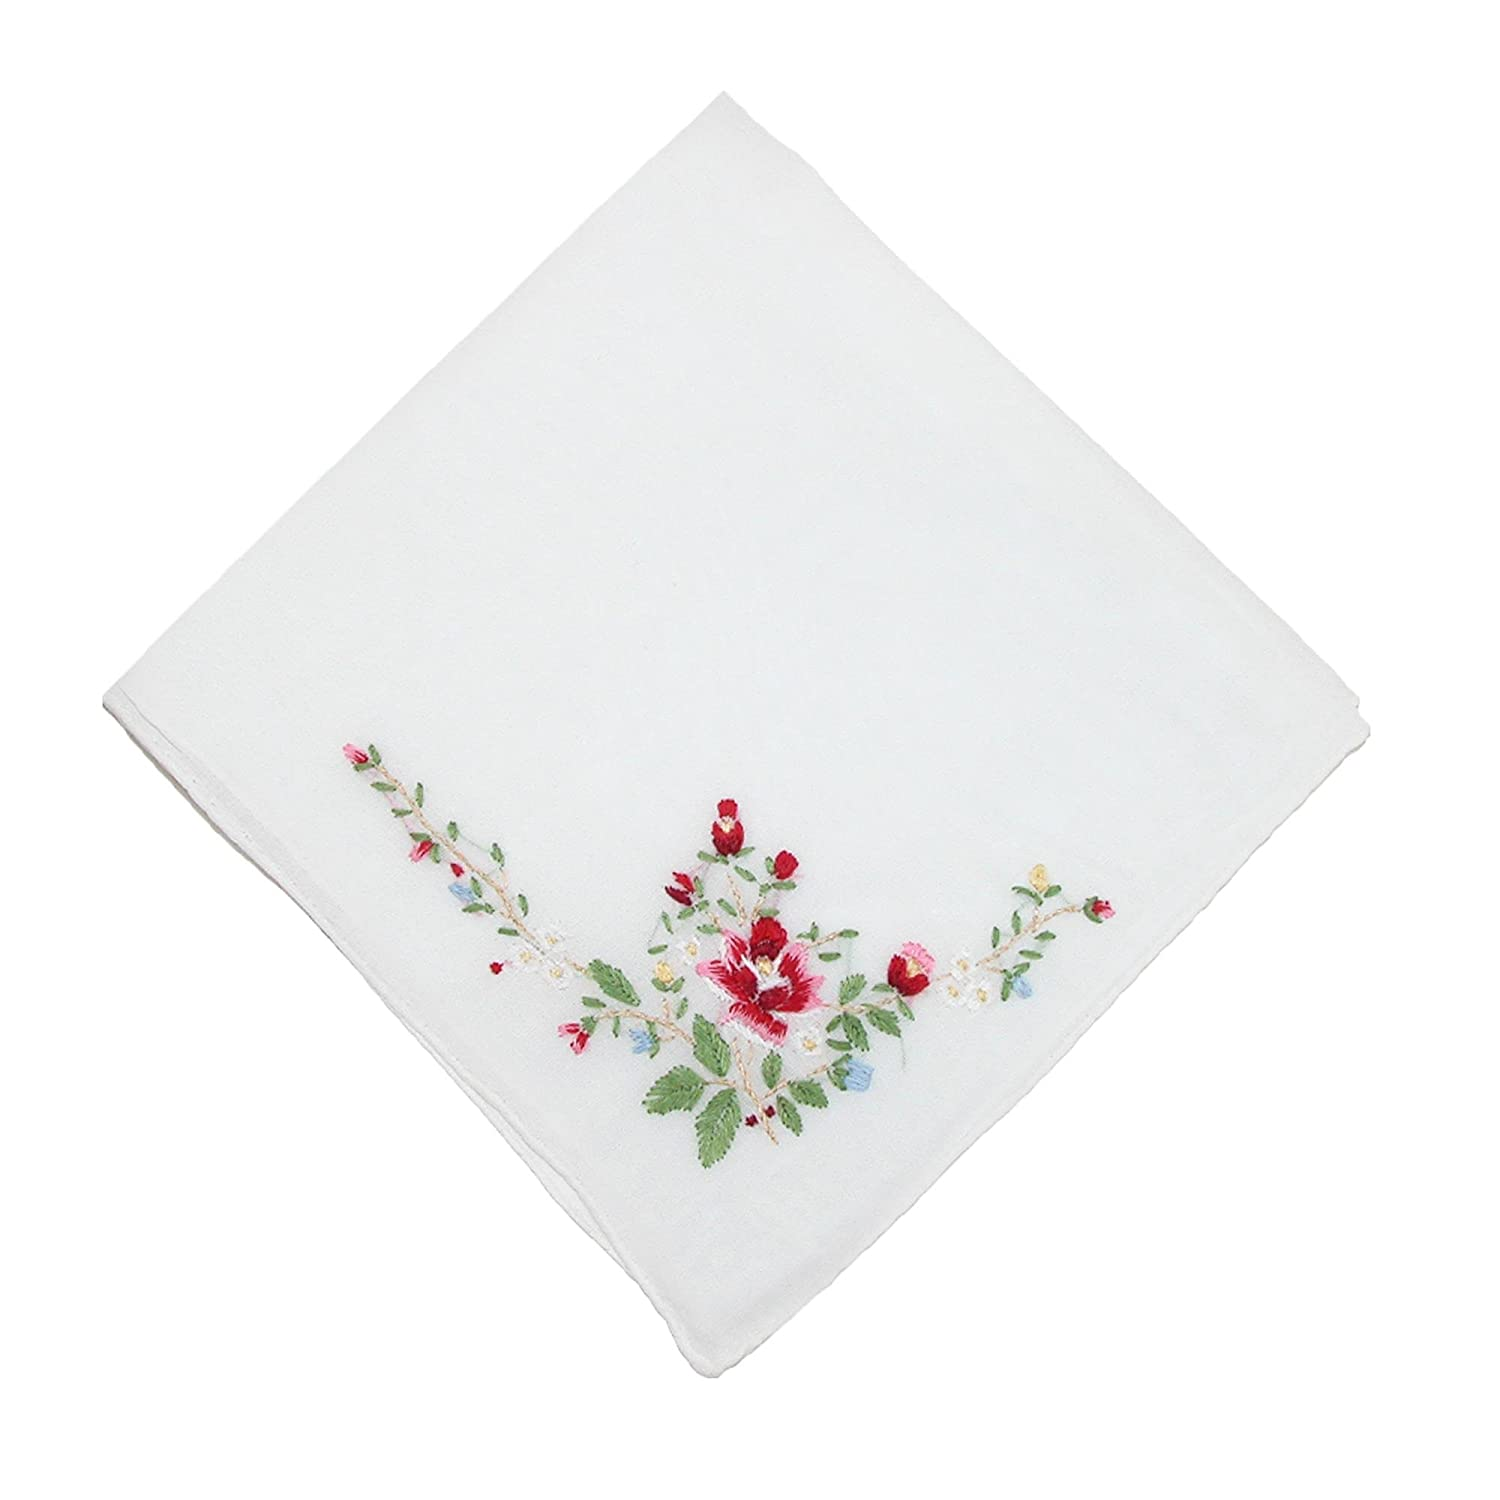 CTM Women's Cotton Floral Embroidered Handkerchief, Pink WO-125452-PNK